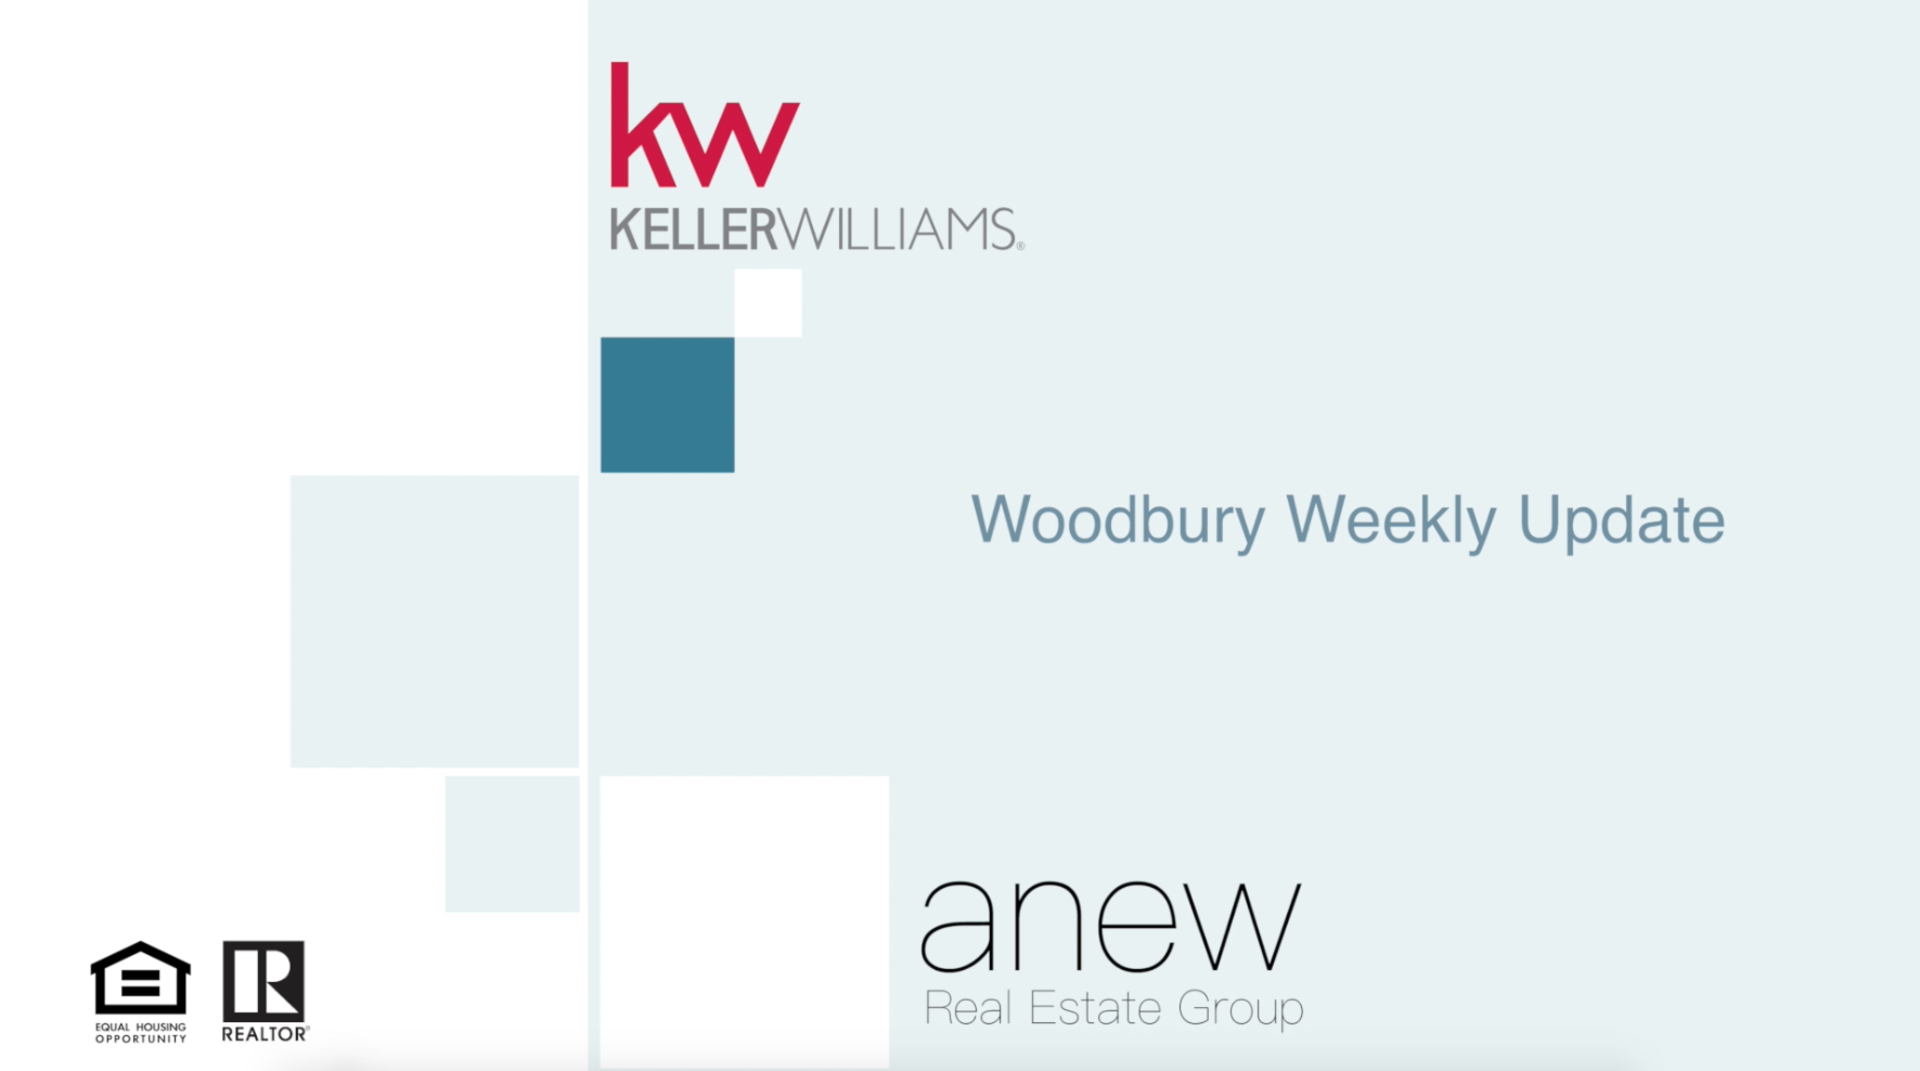 Woodbury Weekly Update for June 18th